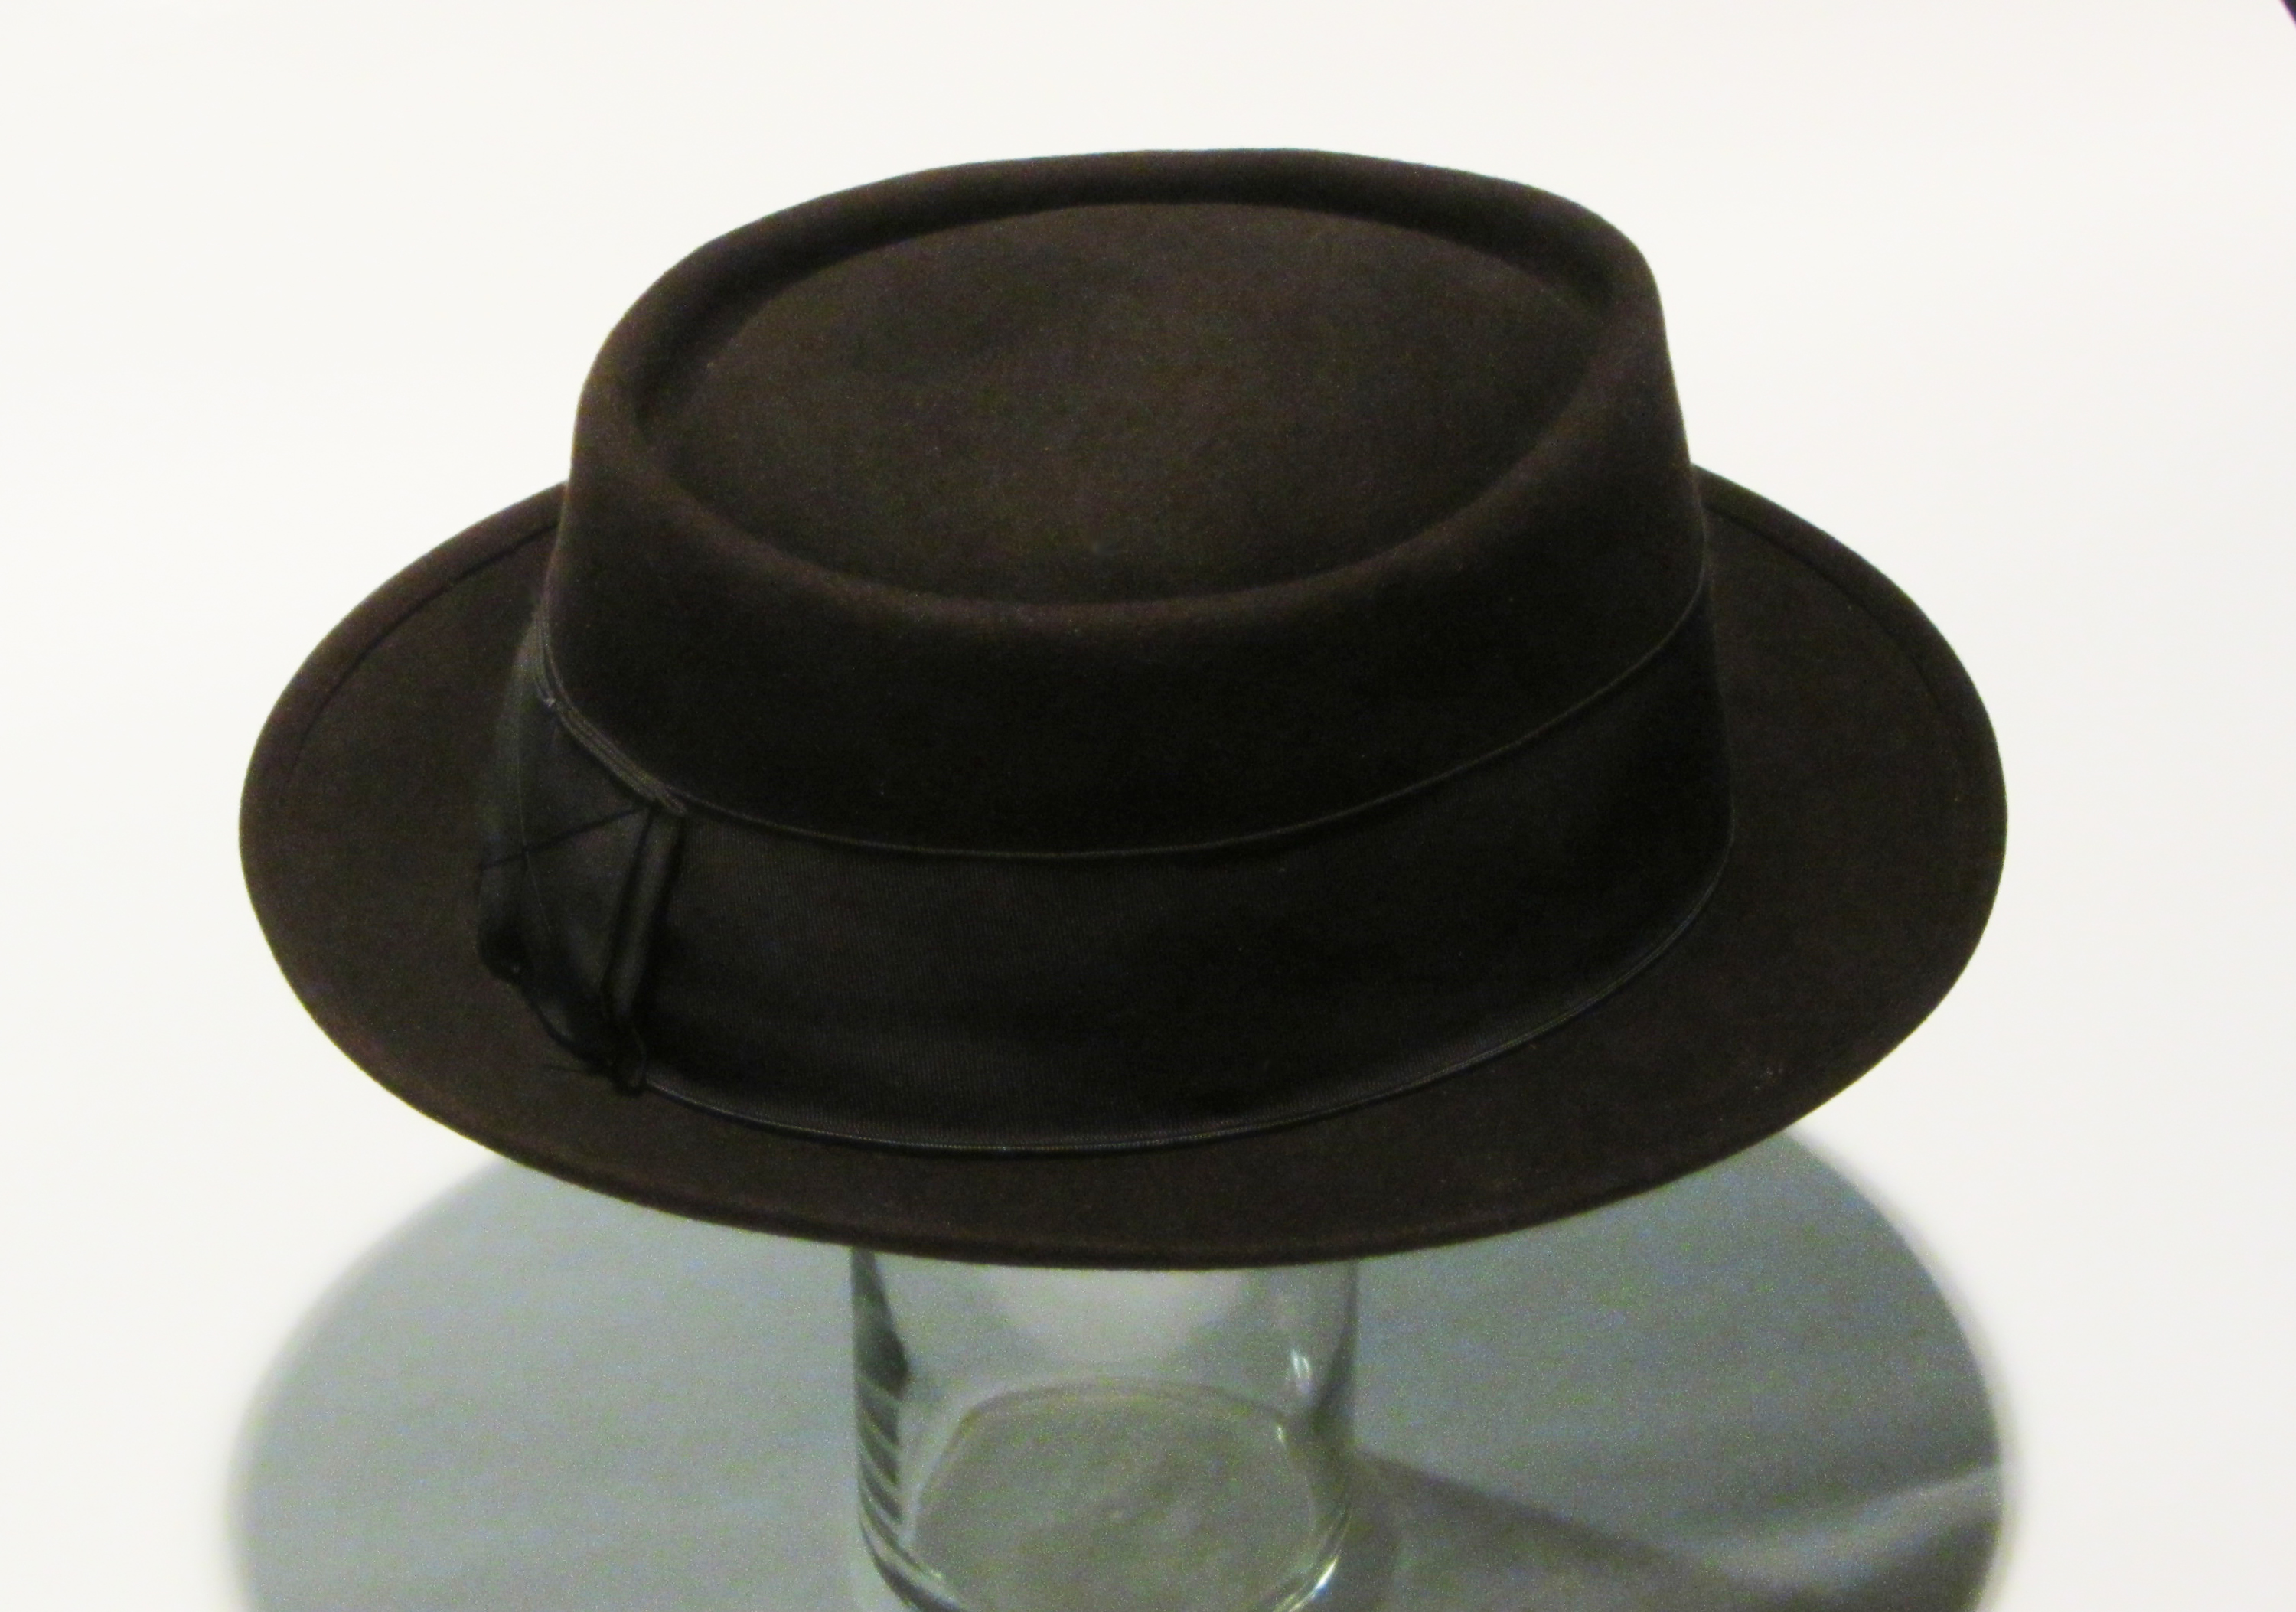 Pork pie hat - Wikipedia e1f78c5822c